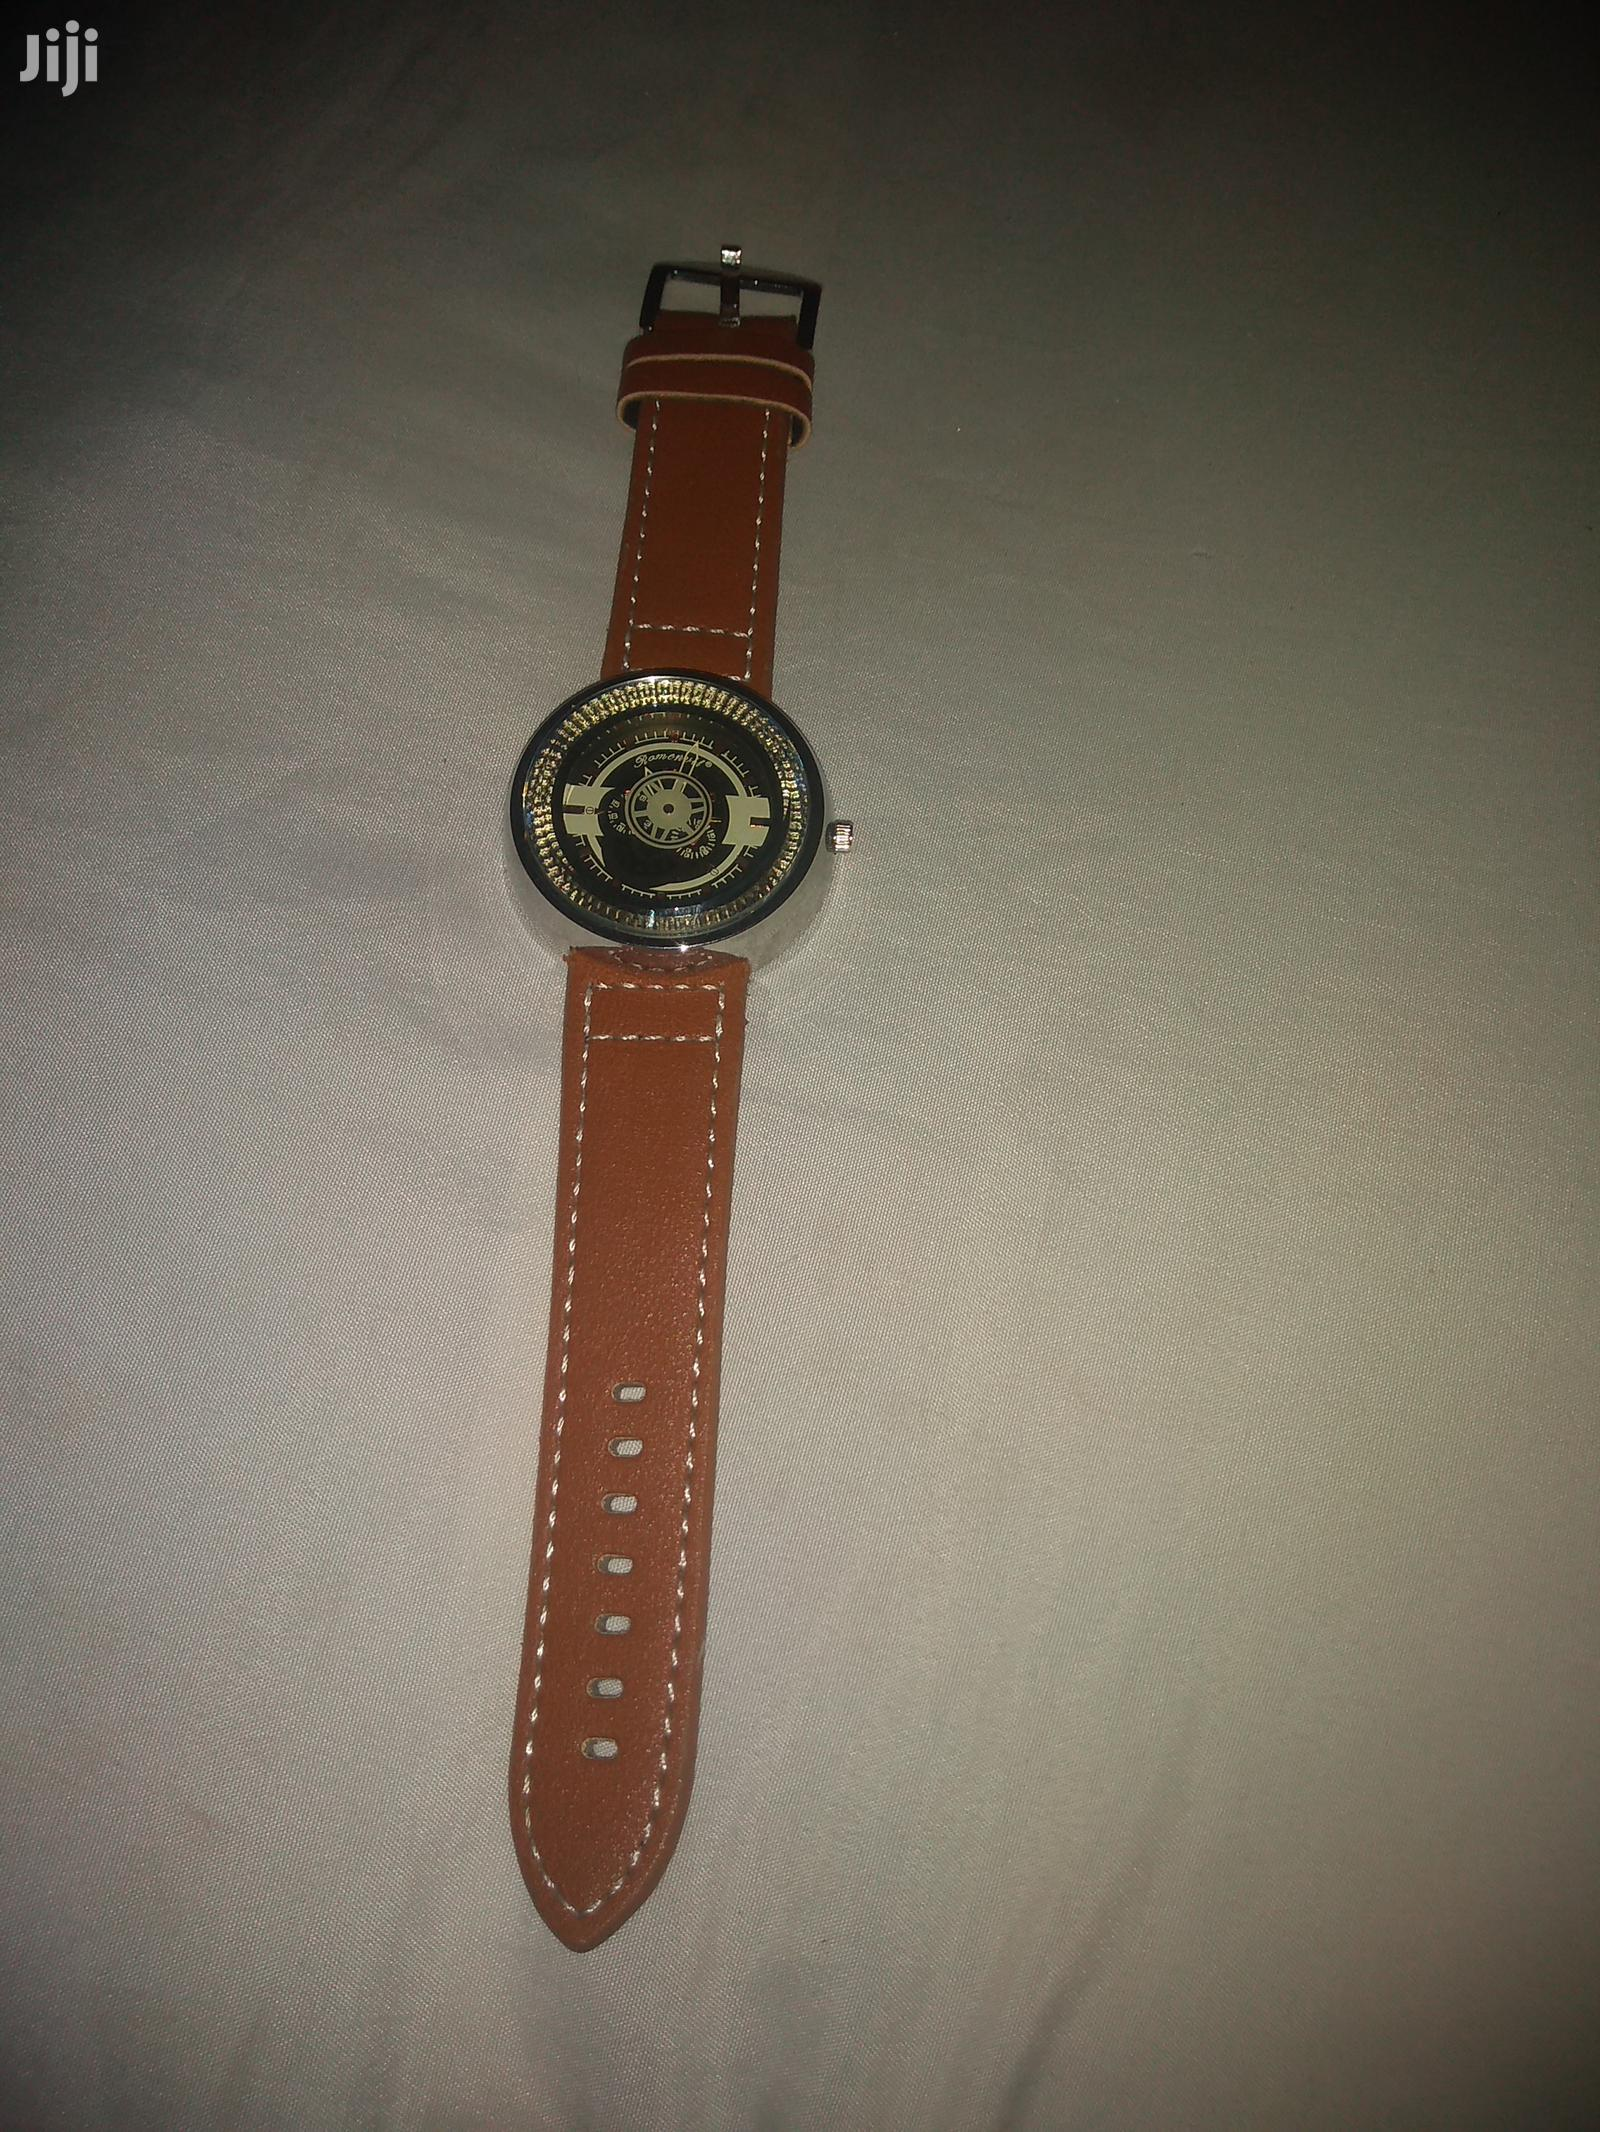 Quality Wrist Watches For Men (Free Gift) Attached | Watches for sale in Achimota, Greater Accra, Ghana